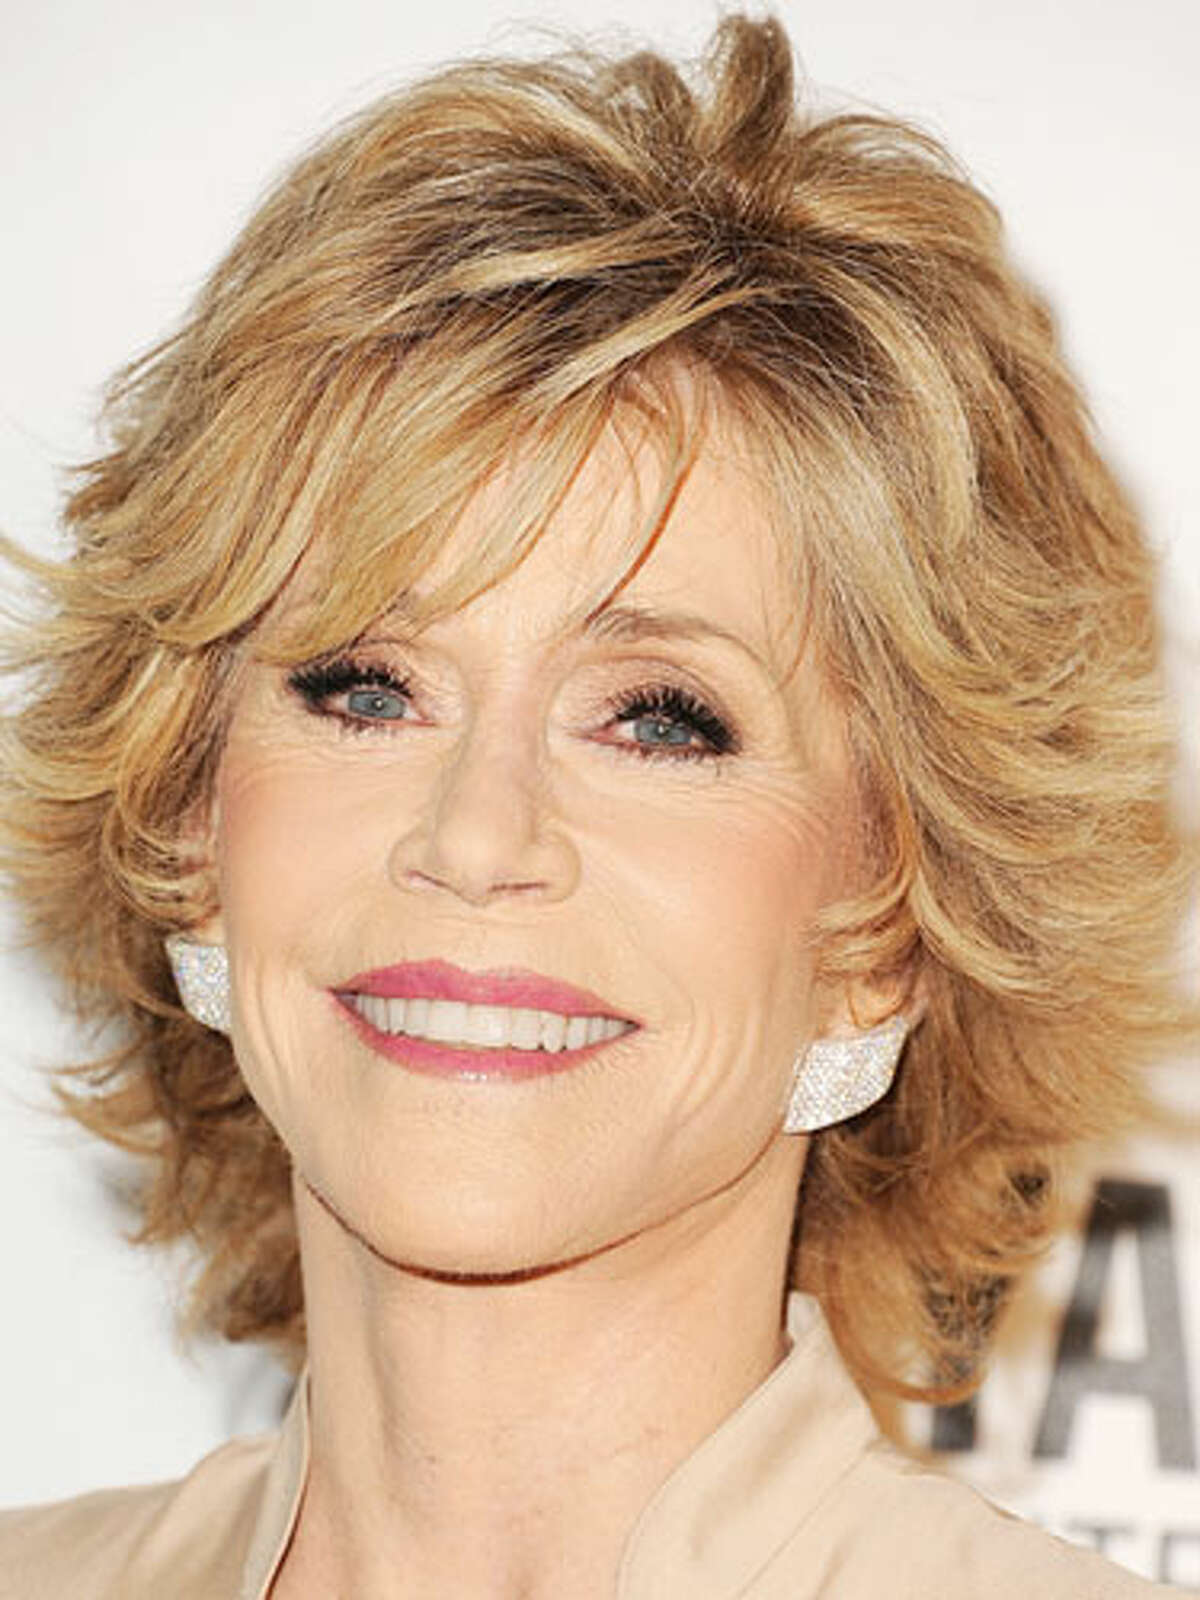 Jane Fonda's Modern Shag Want to go short? Try Fonda's modern take on the shag. To snag this look, ask your stylist to cut choppy layers from front to back with shorter layers framing your face. Style the layers flipped at the ends with molding gel to create the texture that makes this crop pop. 16 Celebs Who Look Better With Age10 Biggest Hair Care MythsHaircuts That Take Off 10 Years15 Slimming Superfoods To Try in 201310 Ways To Build Your Sexual Confidence